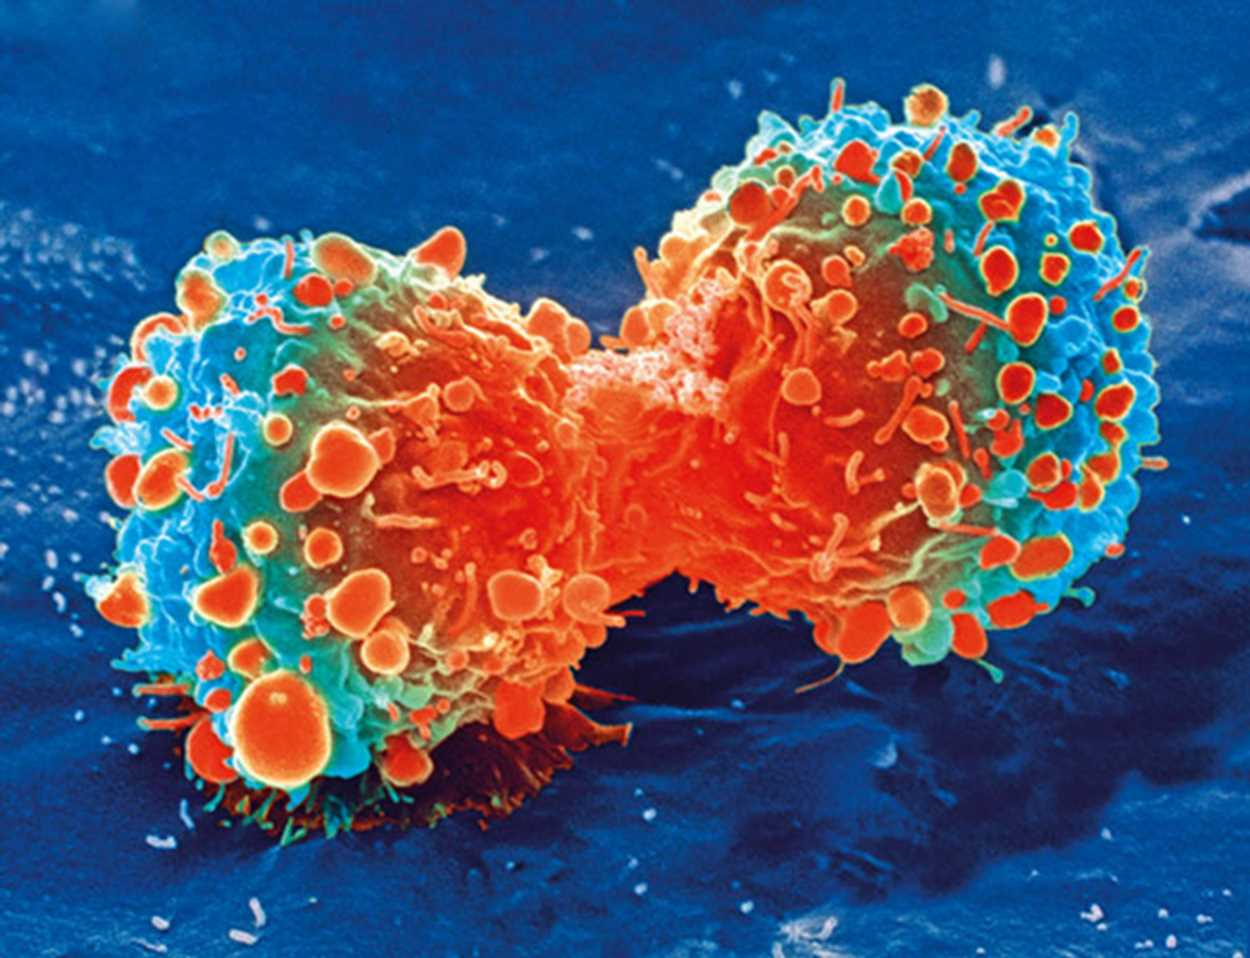 Study: The immune effects of seclidemstat in aggressive ovarian cancer striking young women